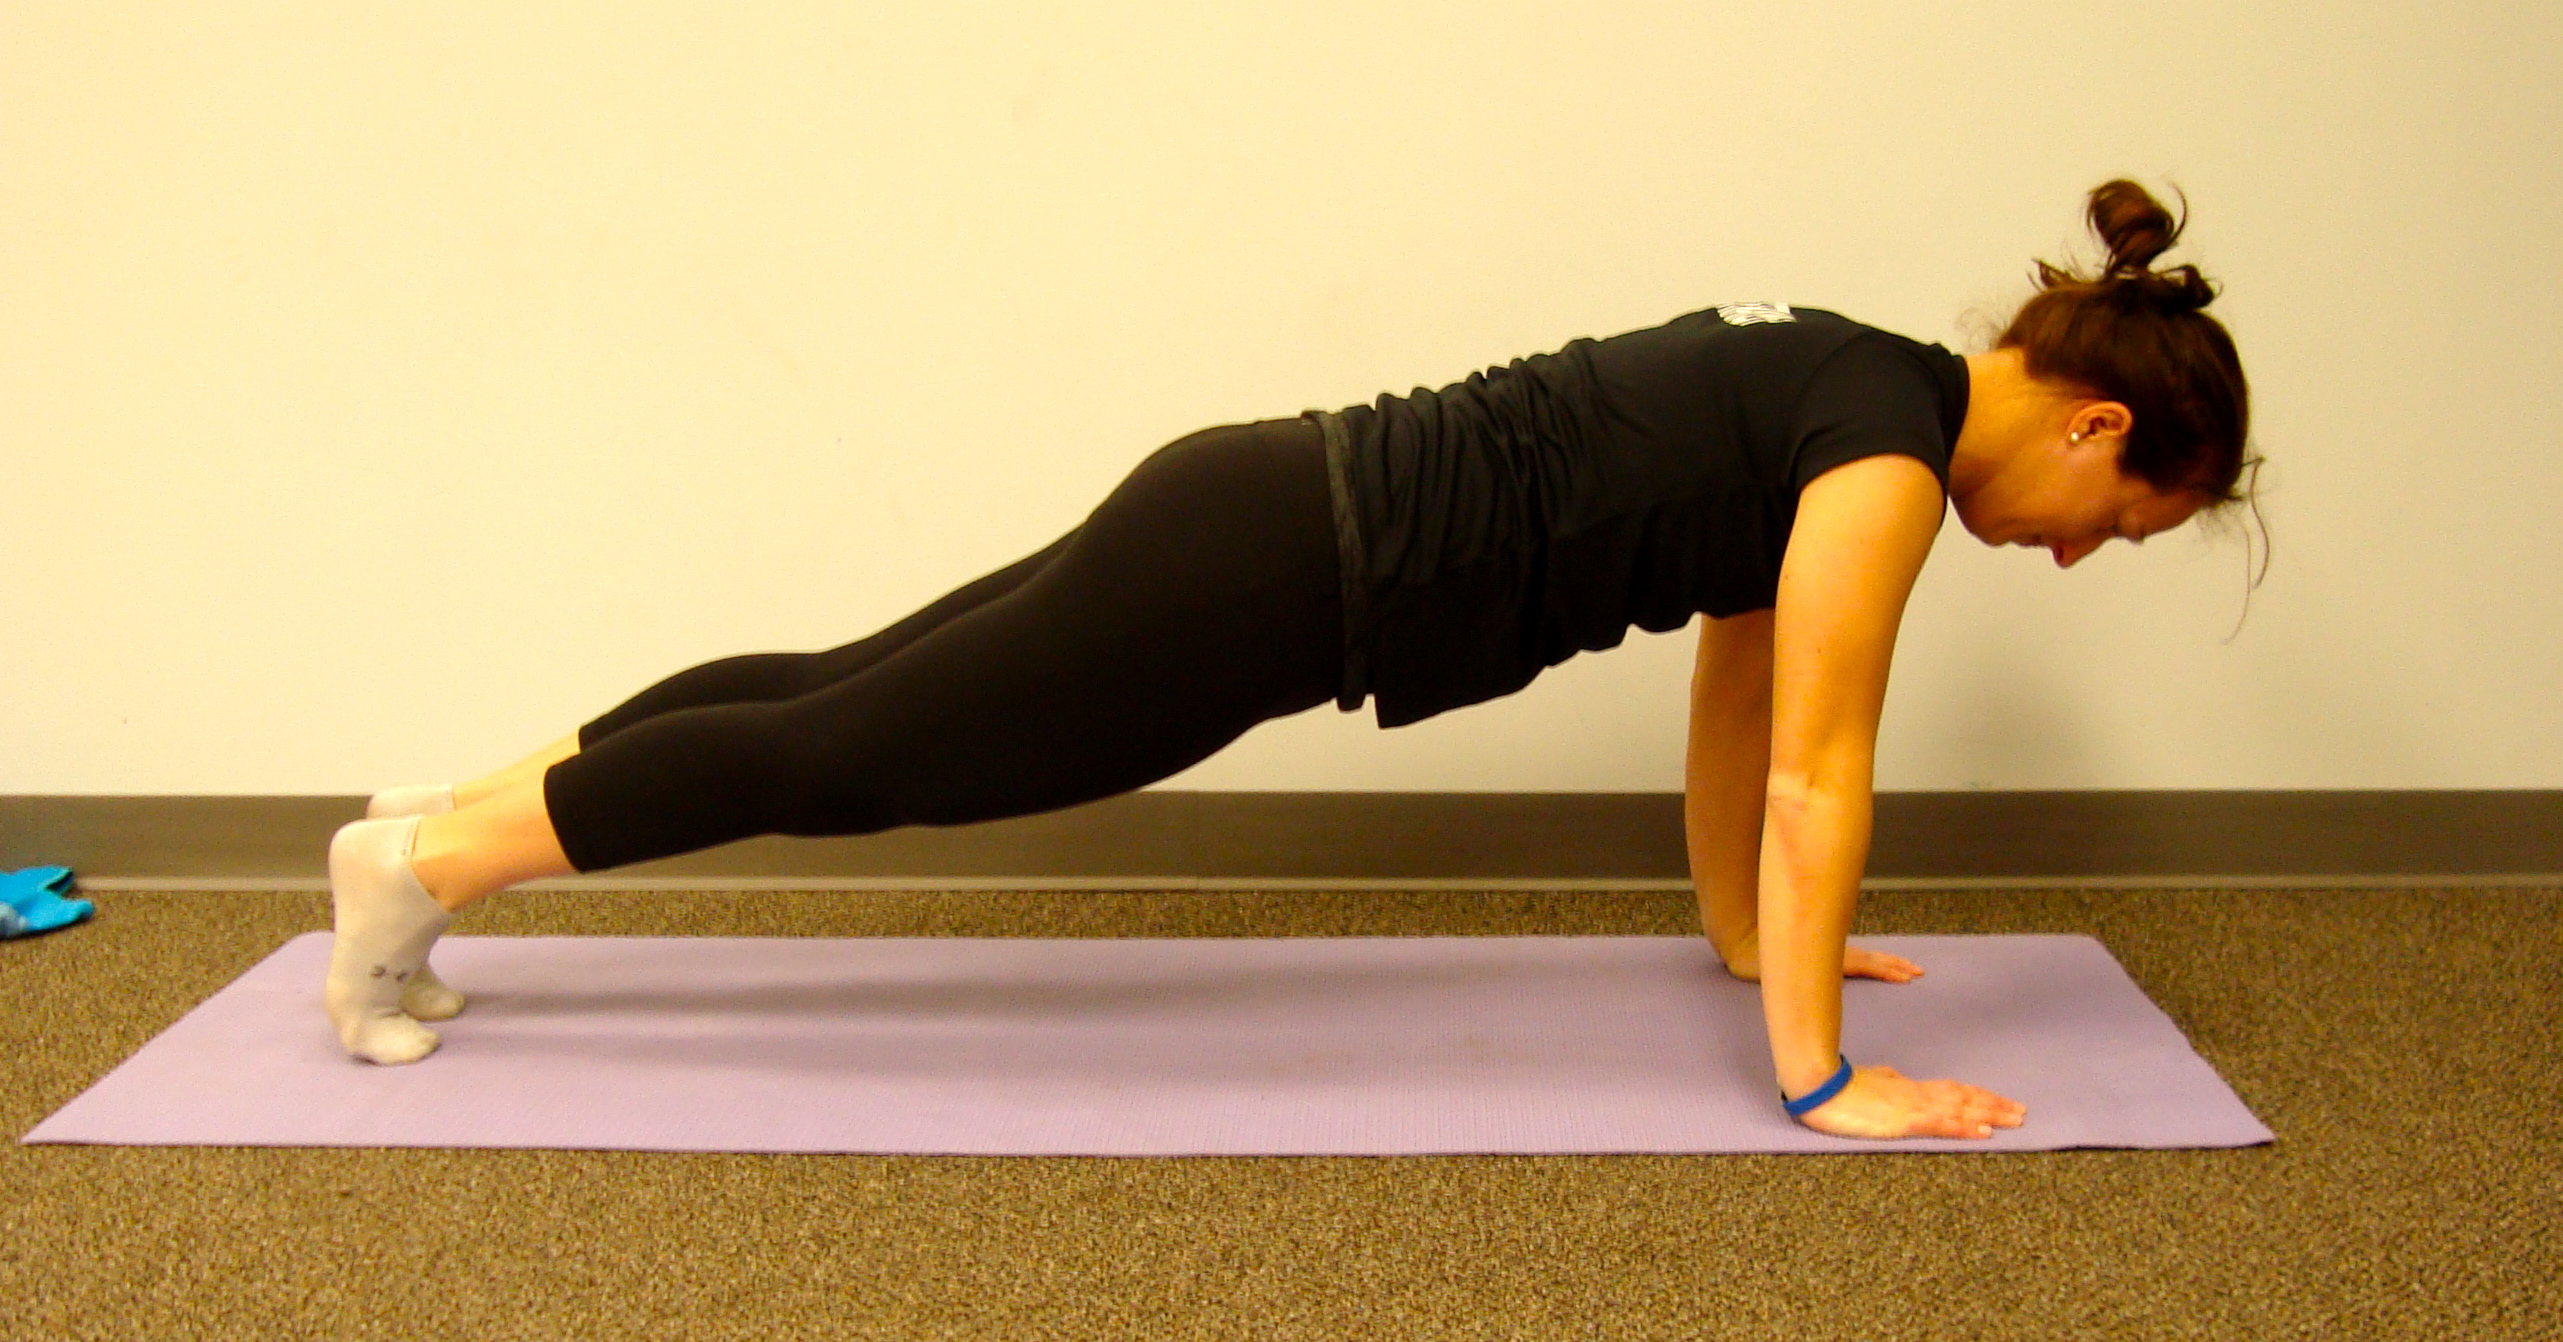 Yoga Plank - Make sure you keep arms right under shoulder where you are the most structually strong